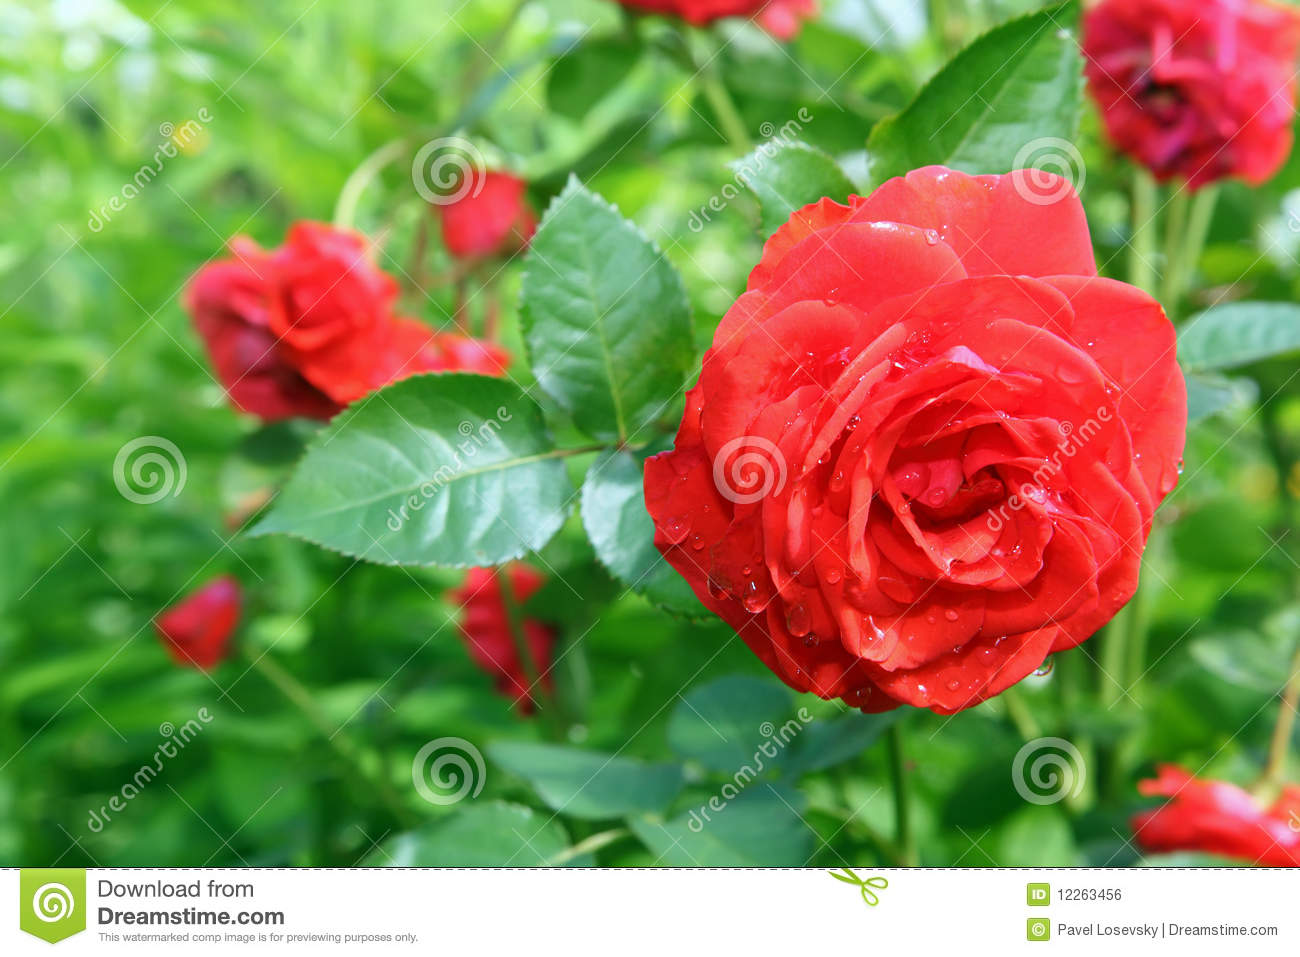 Roses In Garden: Flower Rose In Garden Royalty Free Stock Image